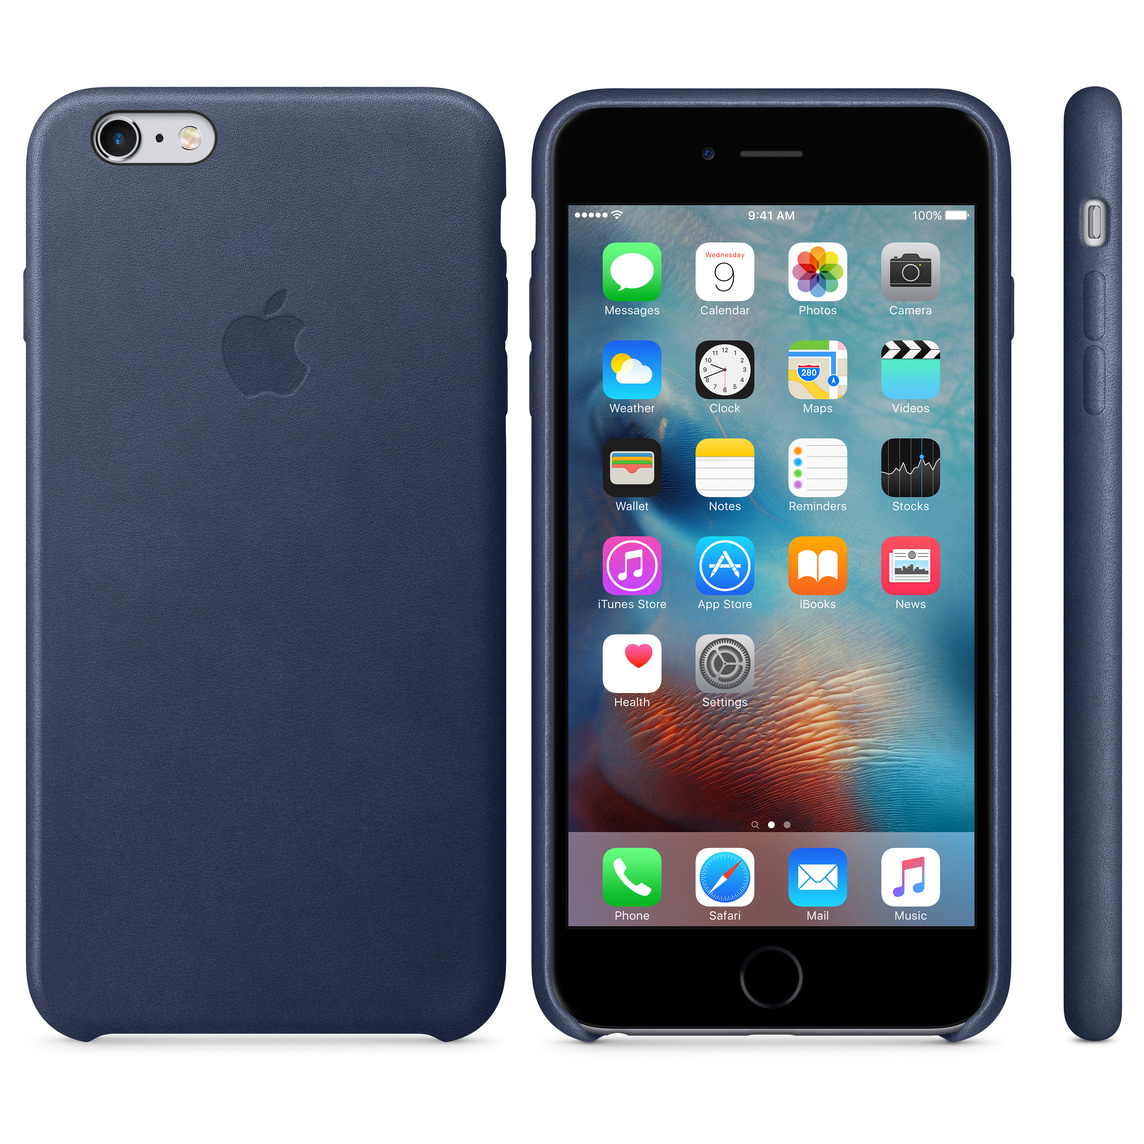 newest 0bc81 68586 iPhone 6 Plus / 6s Plus Leather Case - Midnight Blue